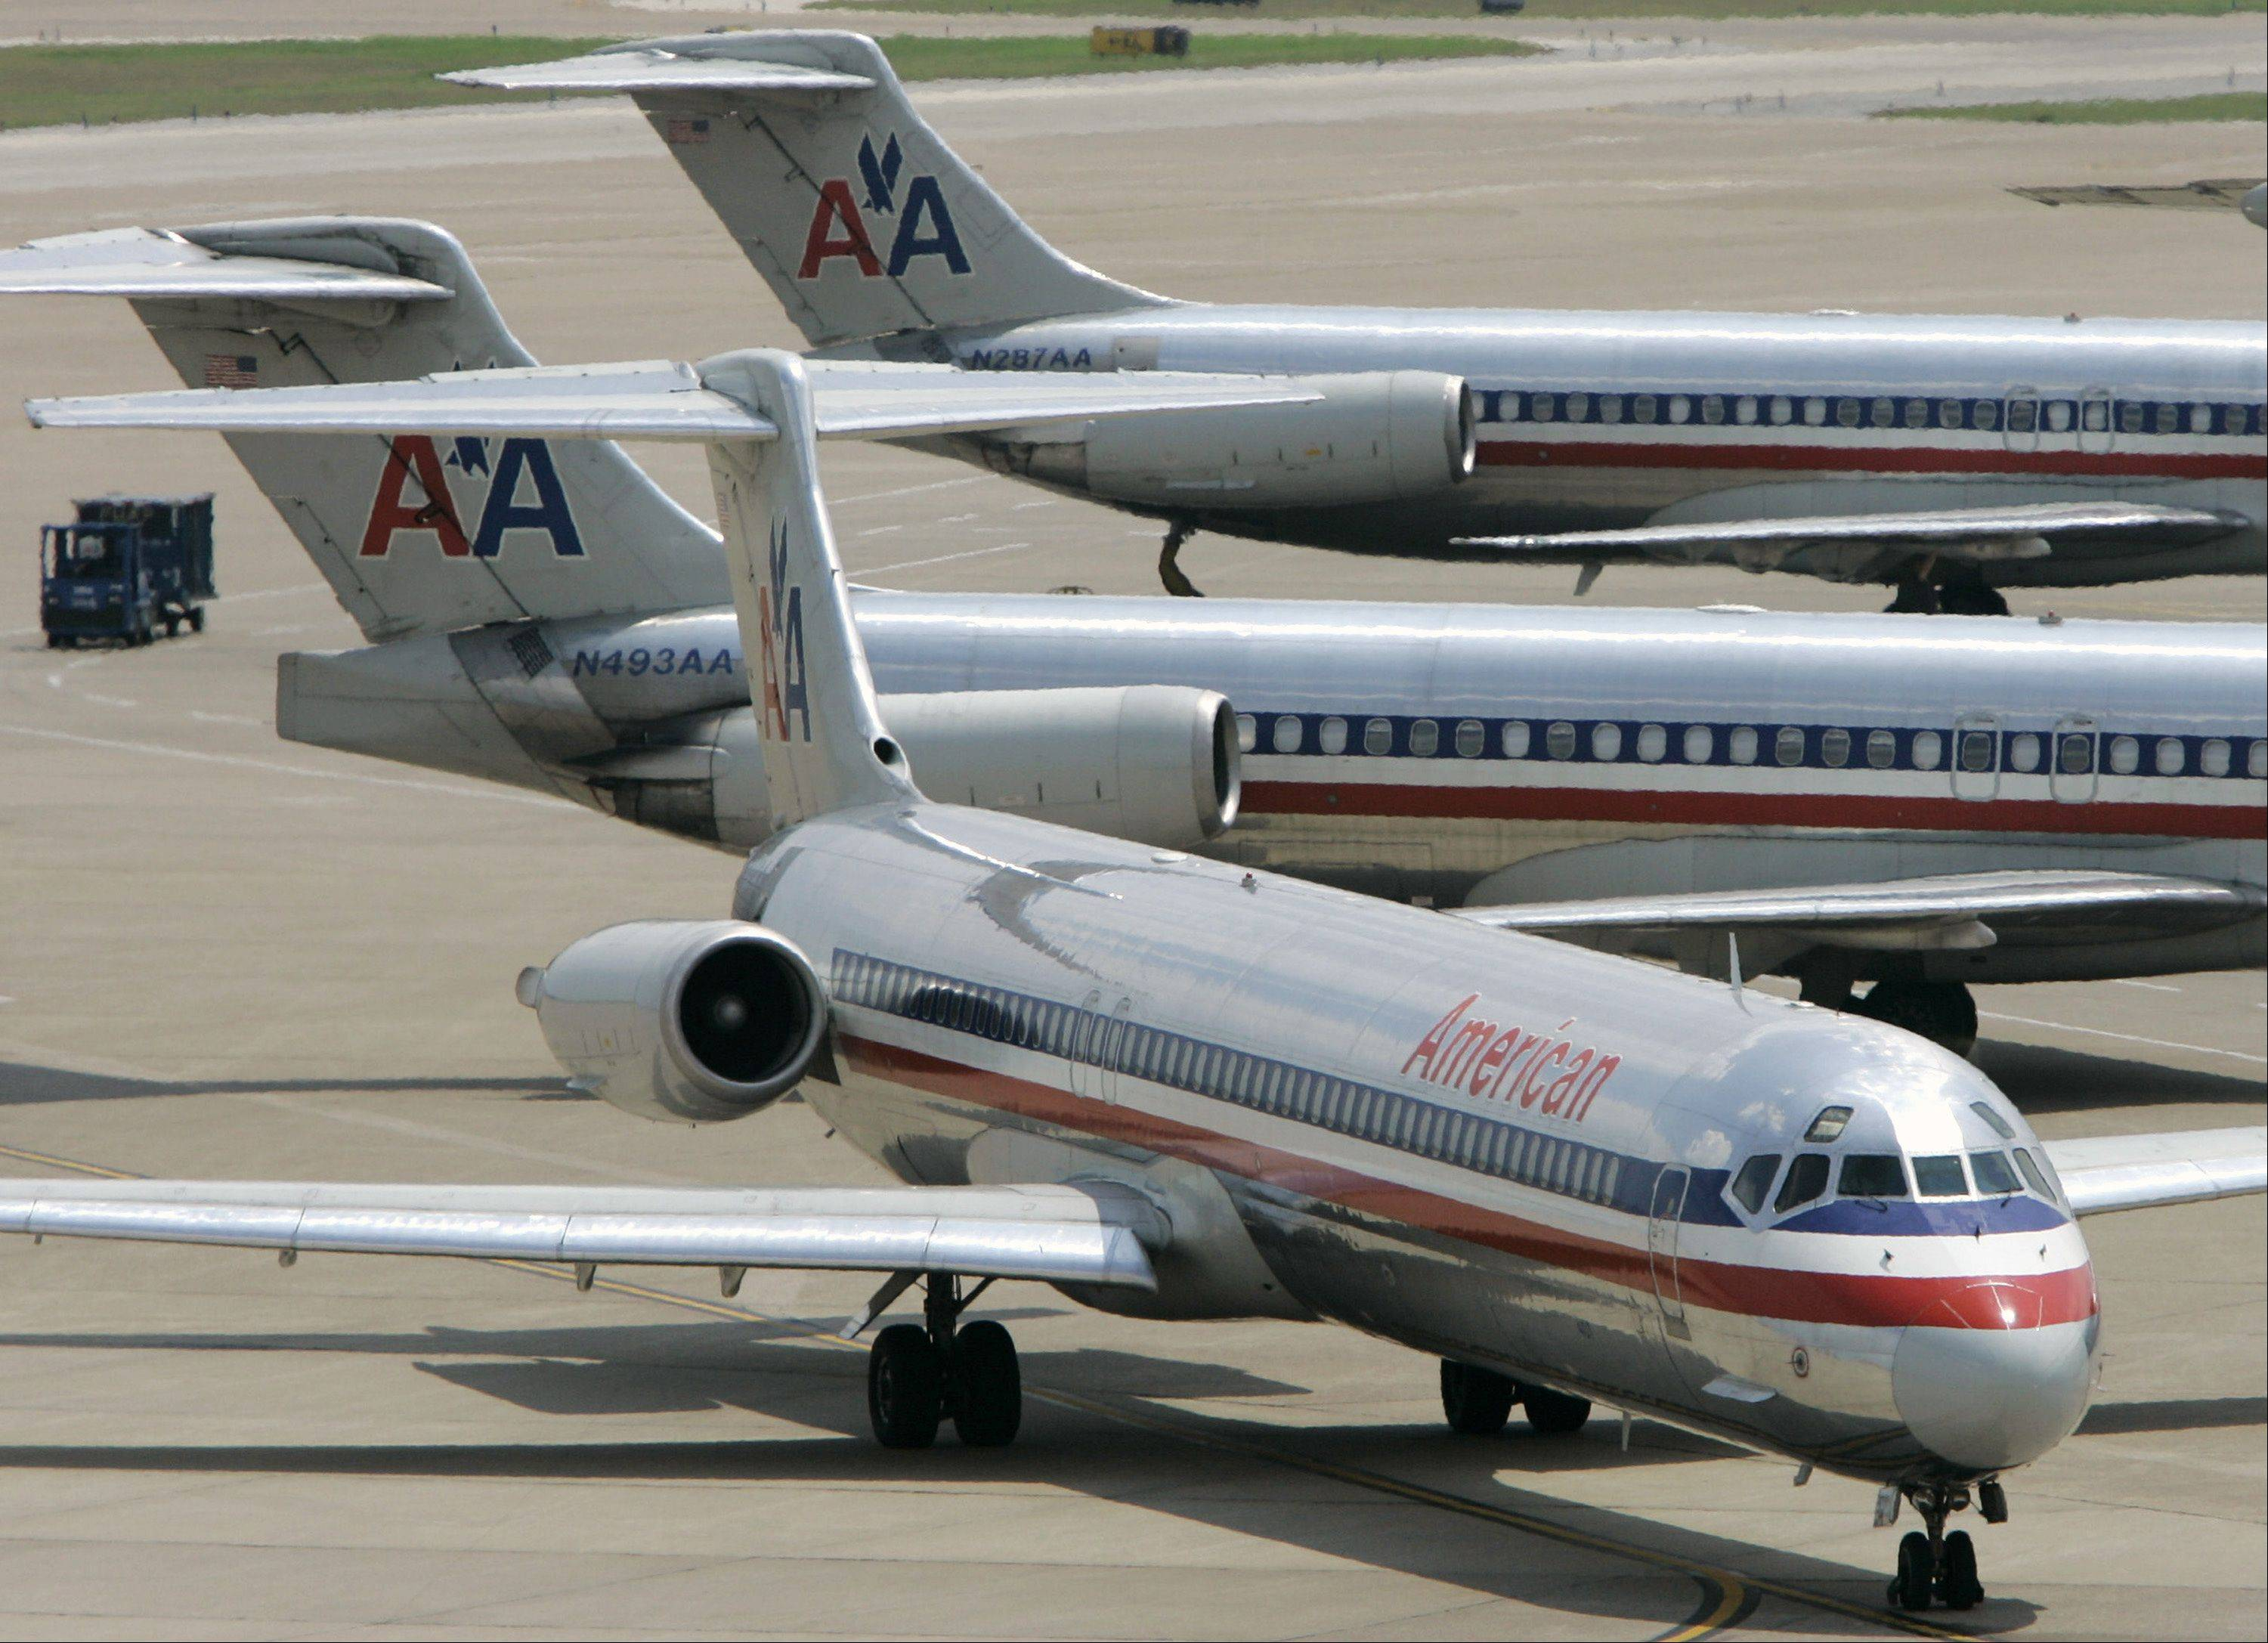 @$ID/[No paragraph style]:ASSOCIATED PRESSThe long-anticipated merger between American Airlines and US Airways, apparently has hit another snag.